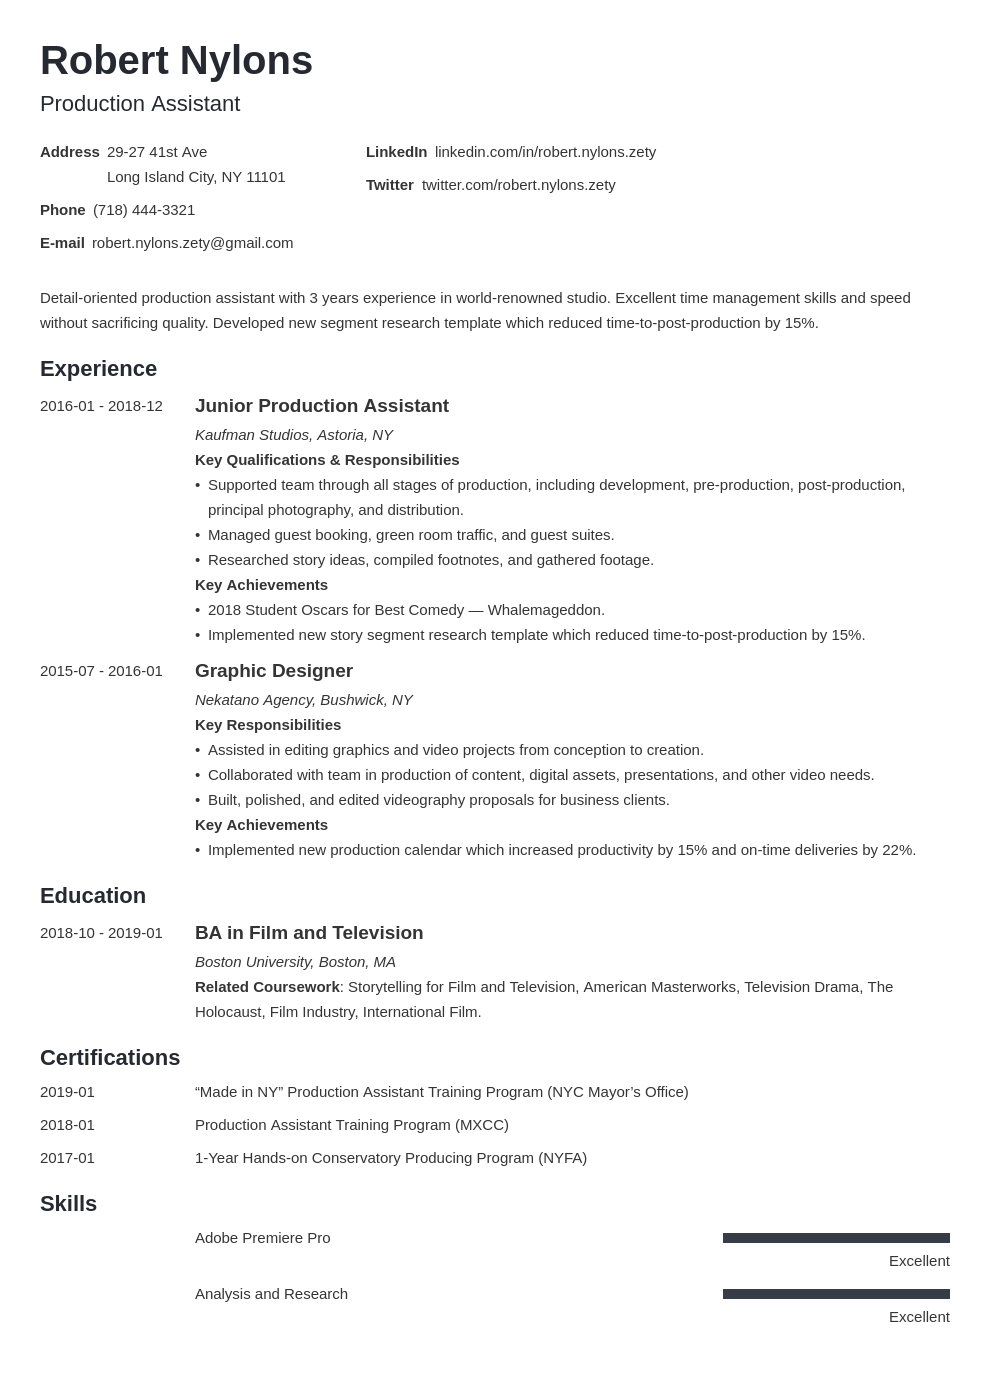 Production Assistant Resume Example Template Minimo Resume Examples Job Resume Examples Resume